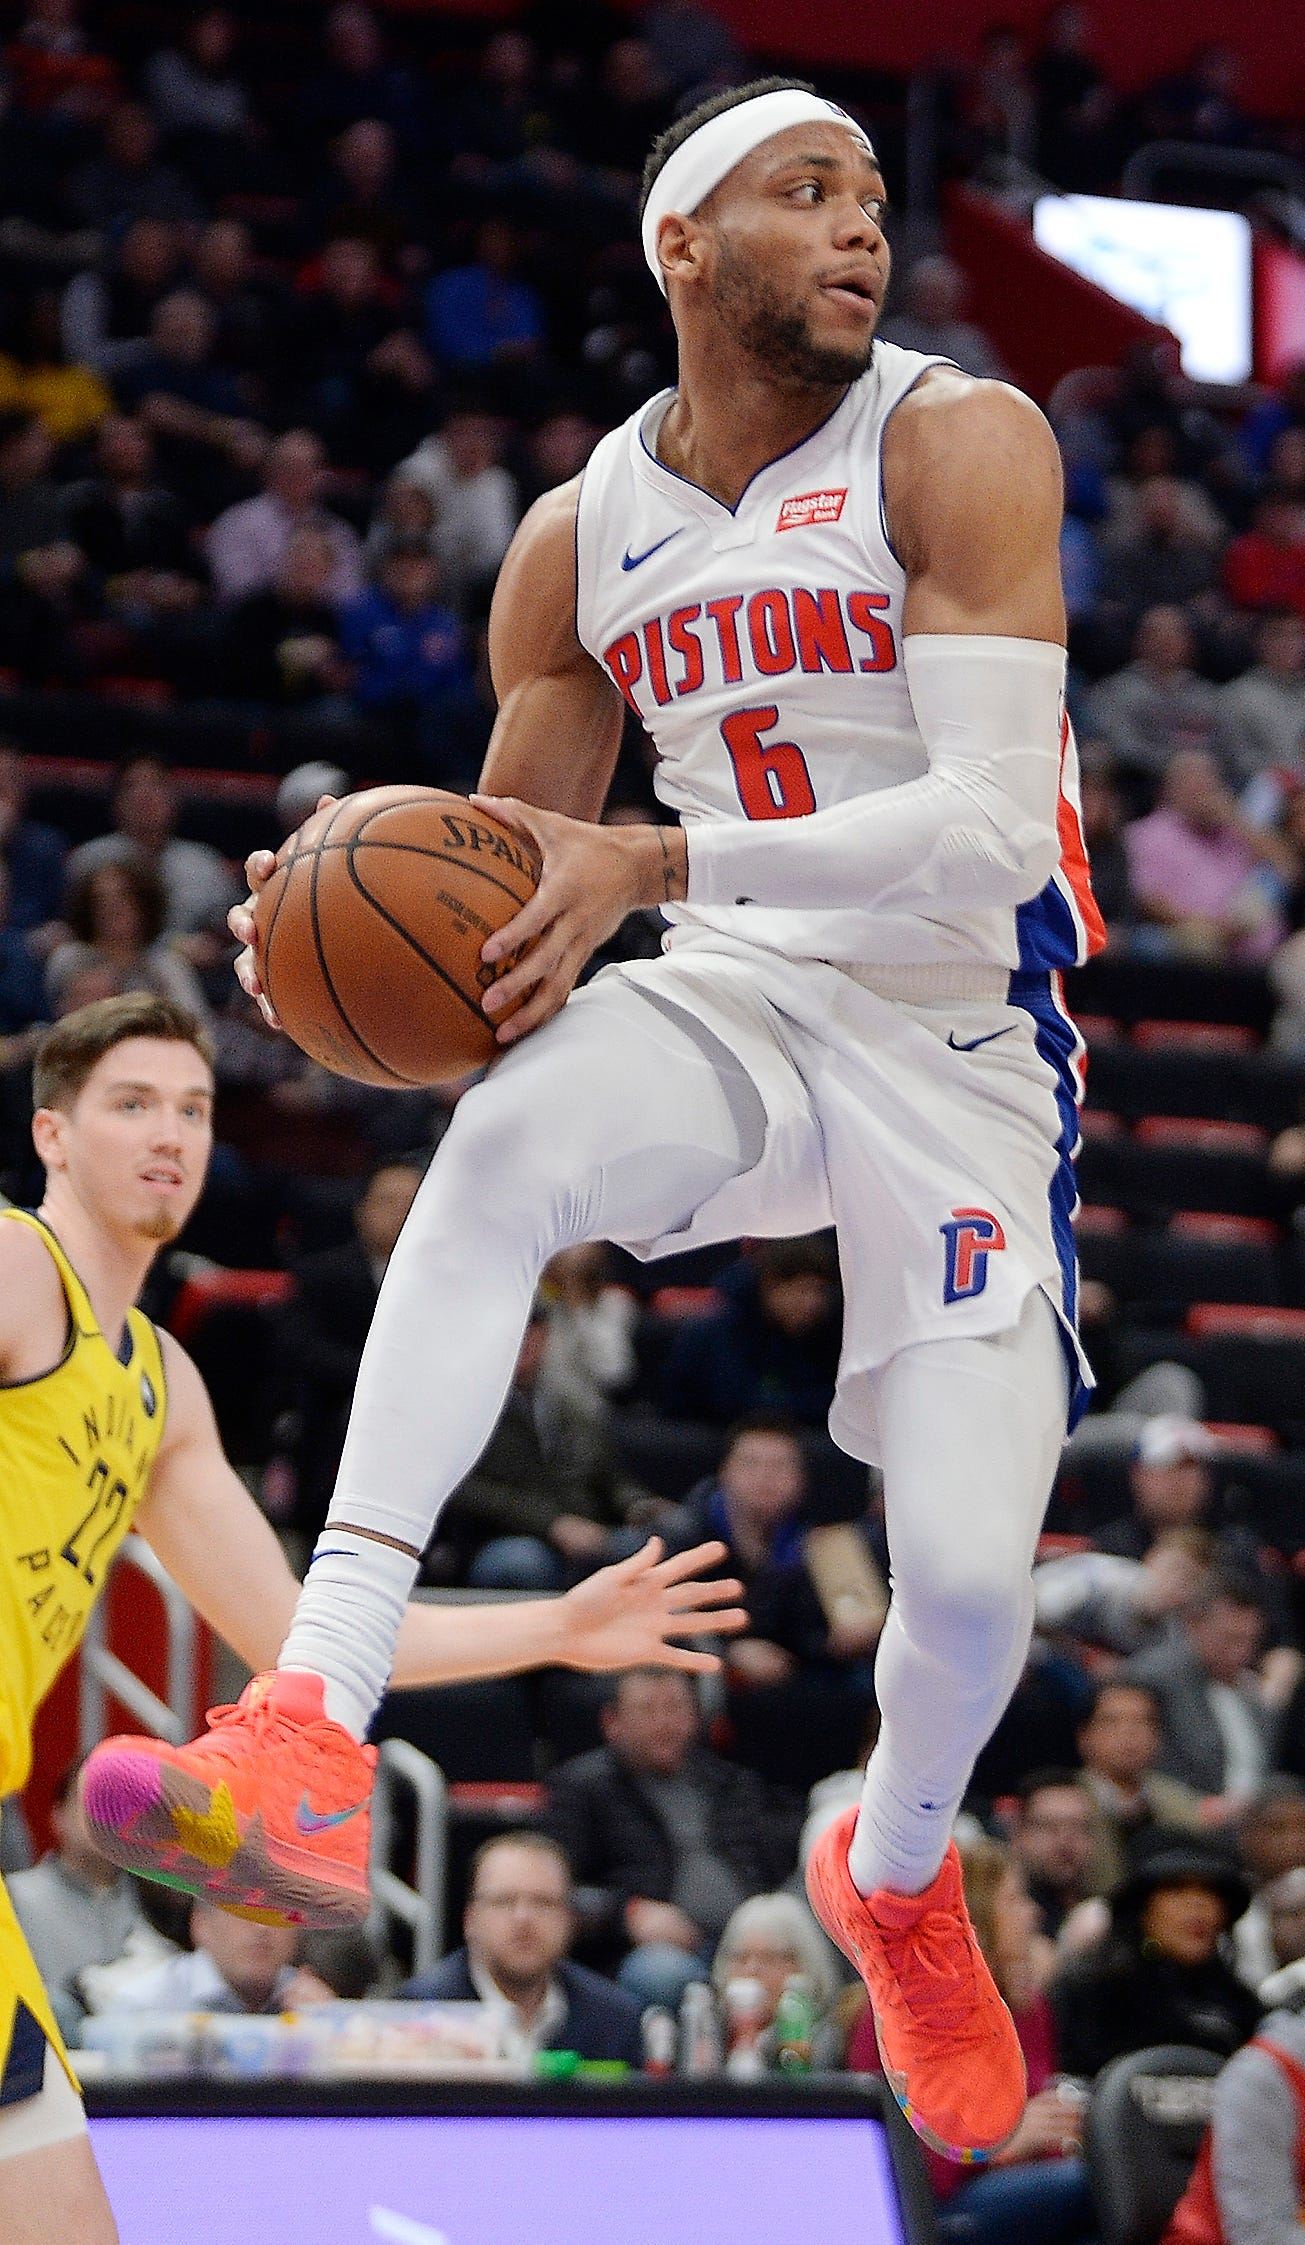 Pistons rookie Bruce Brown posted 12 points in Detroit's 119-96 win over Atlanta last Friday.